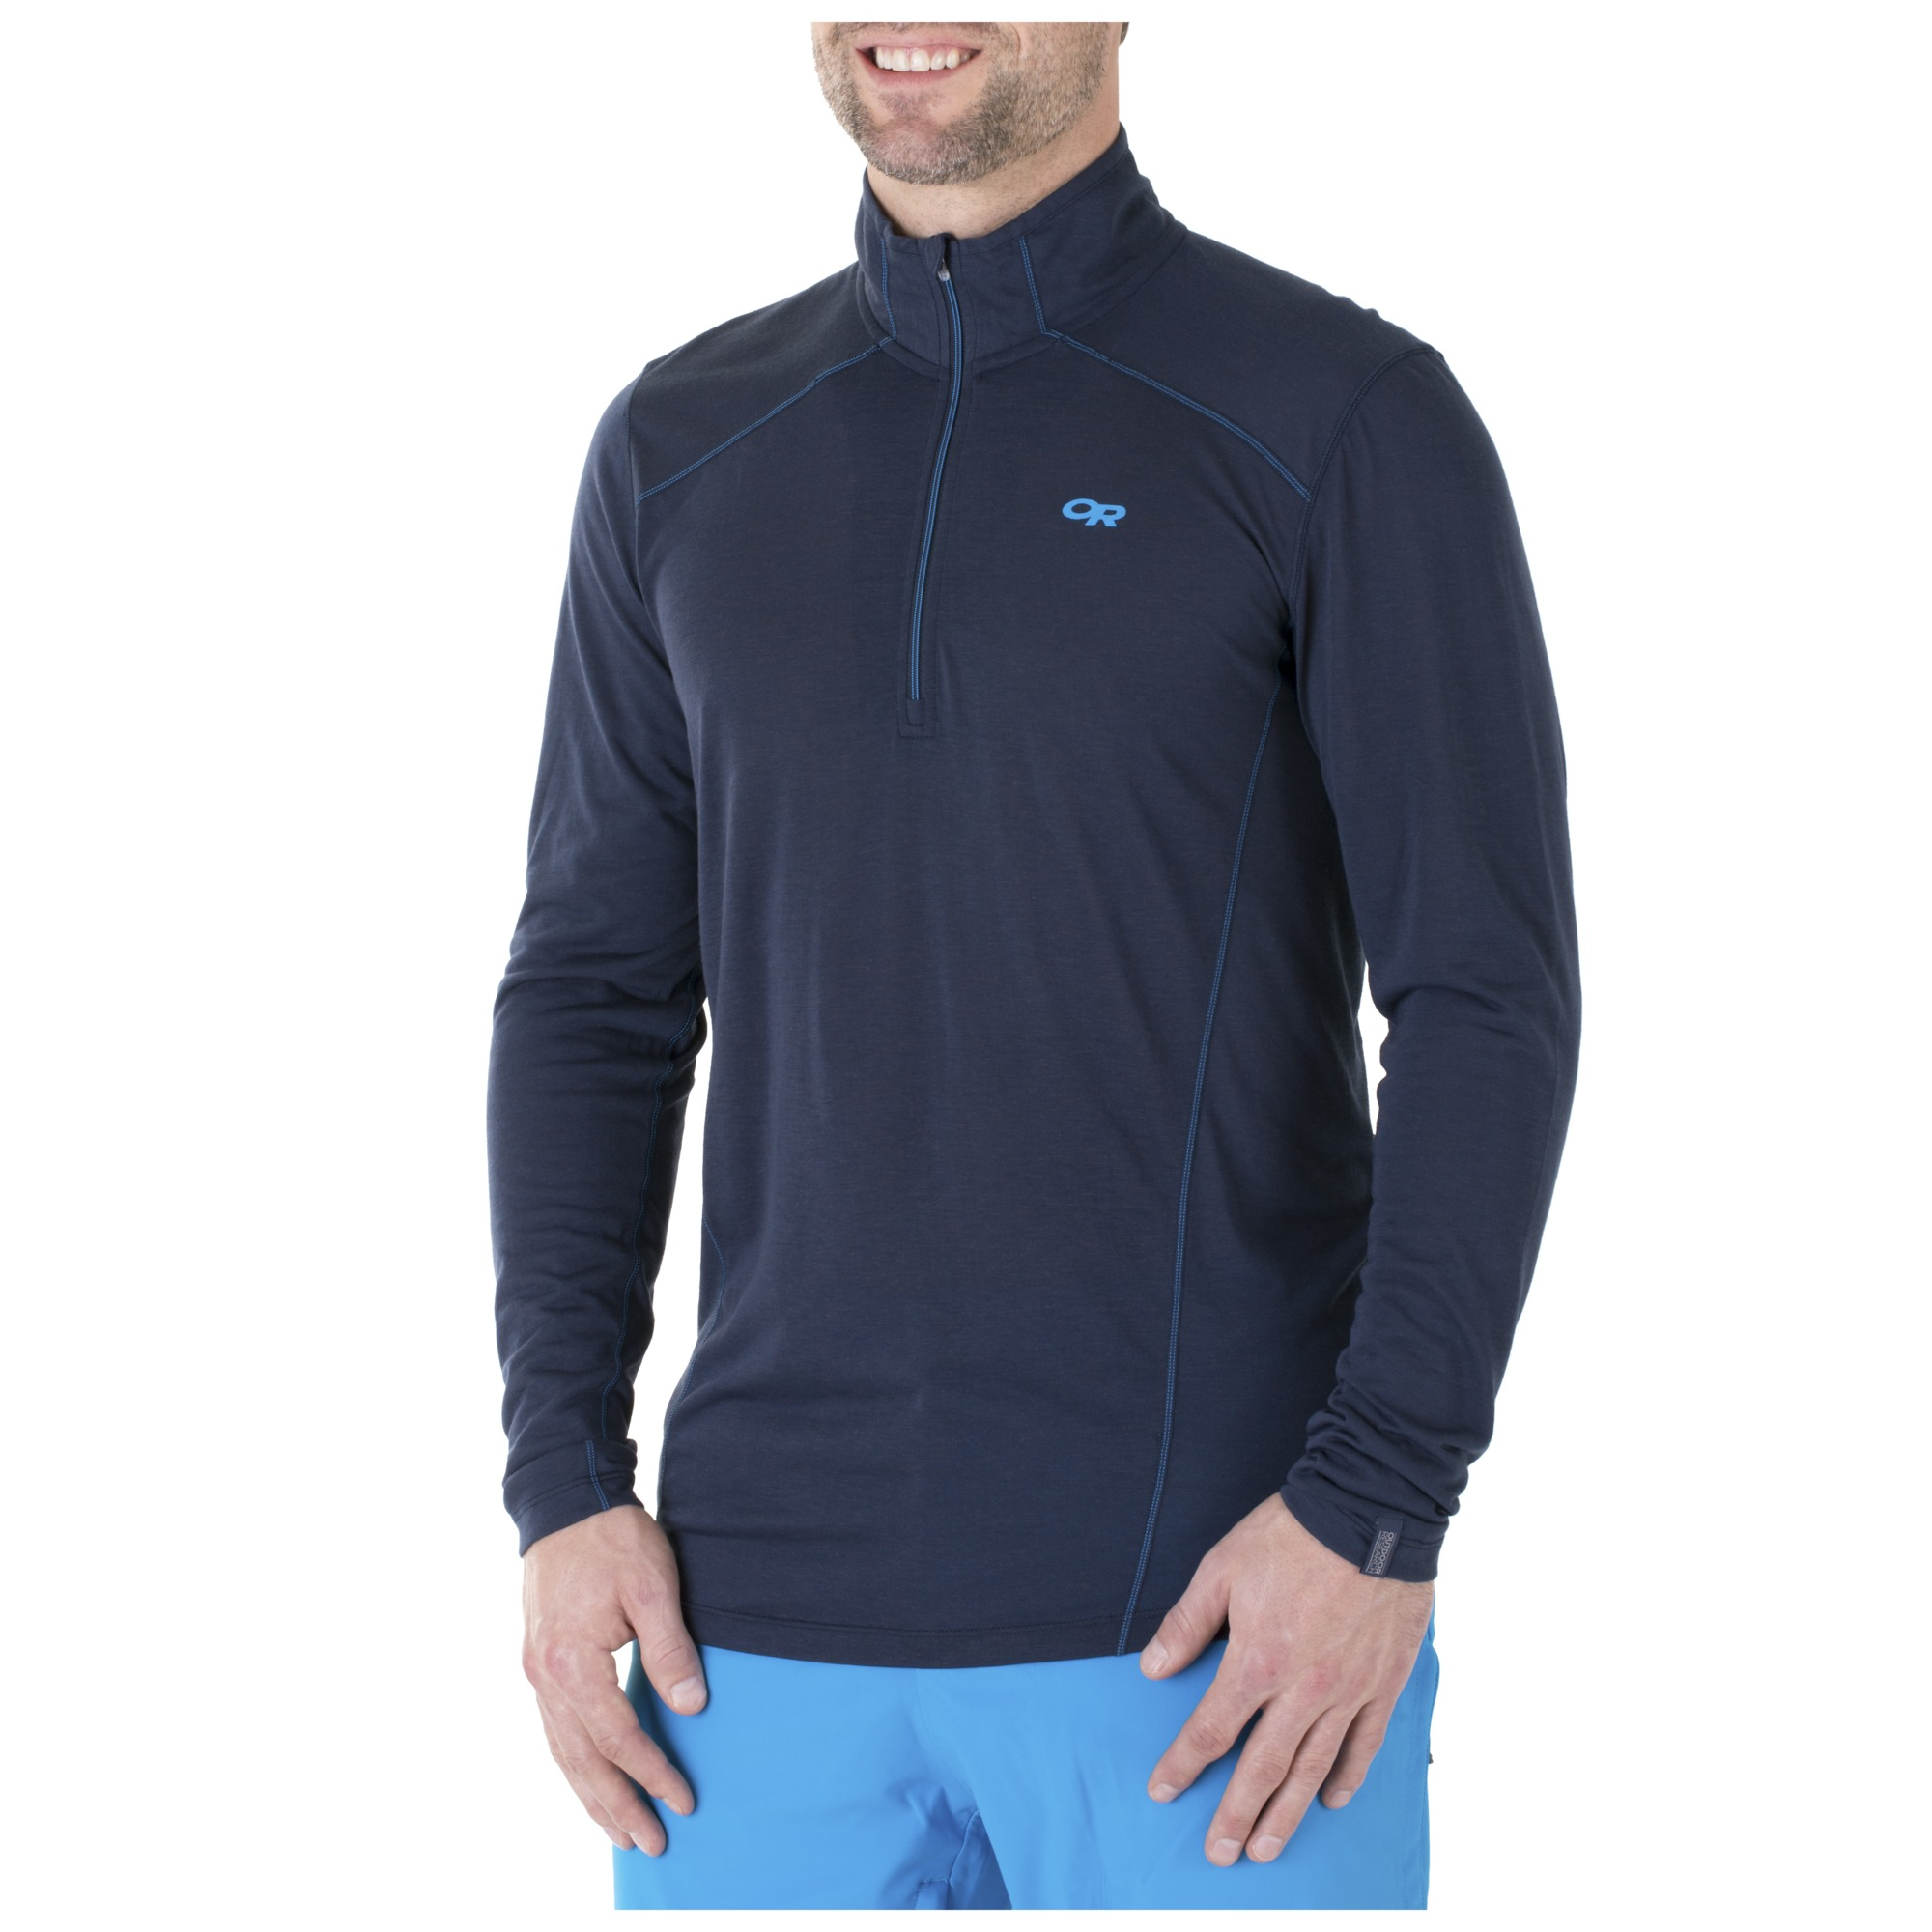 5ee12ac5f3474 Men's Sequence L/S Zip Top™ - charcoal | Outdoor Research